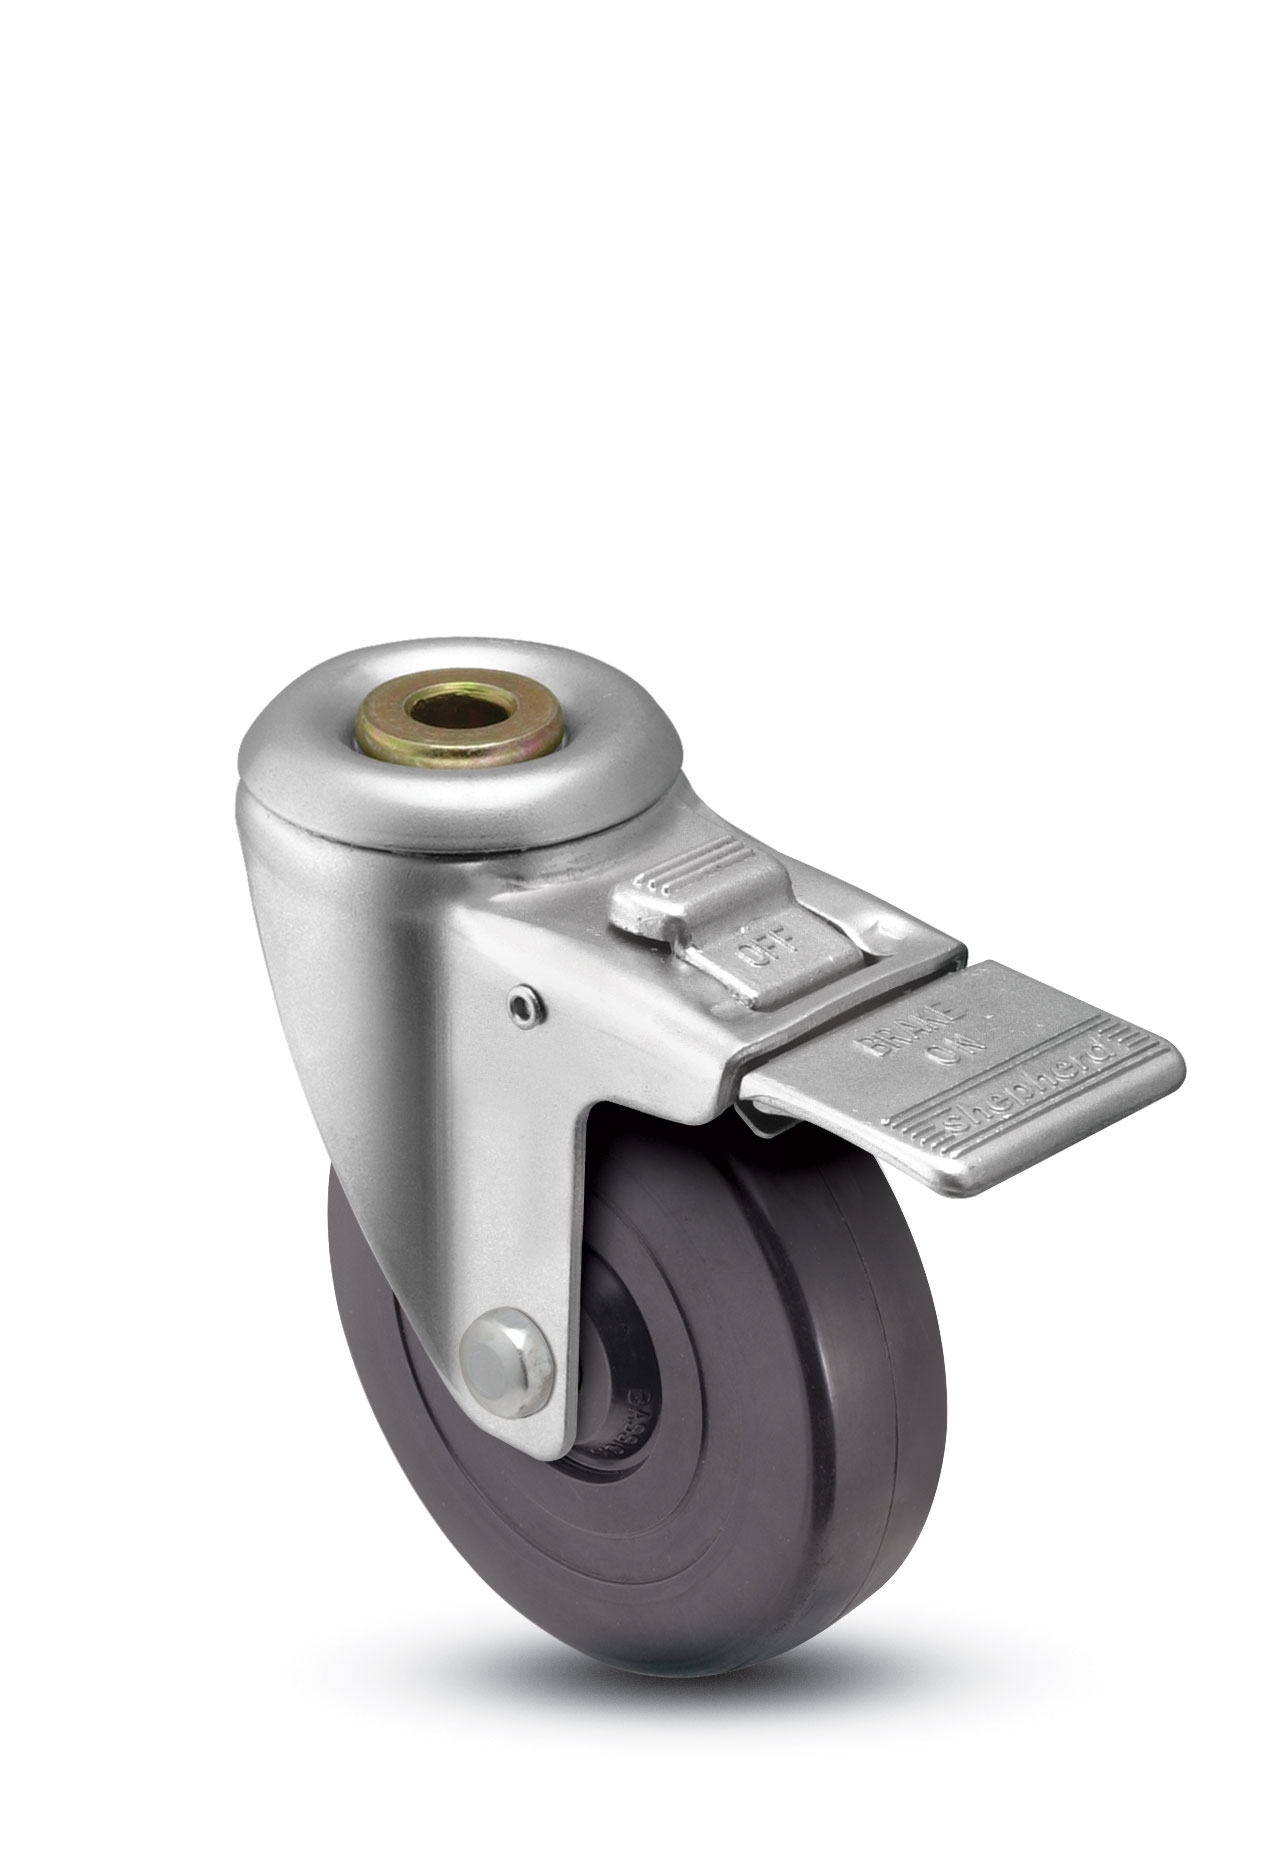 Swivel caster with a black wheel, hollow kingpin connector and a pedal style total lock brake.